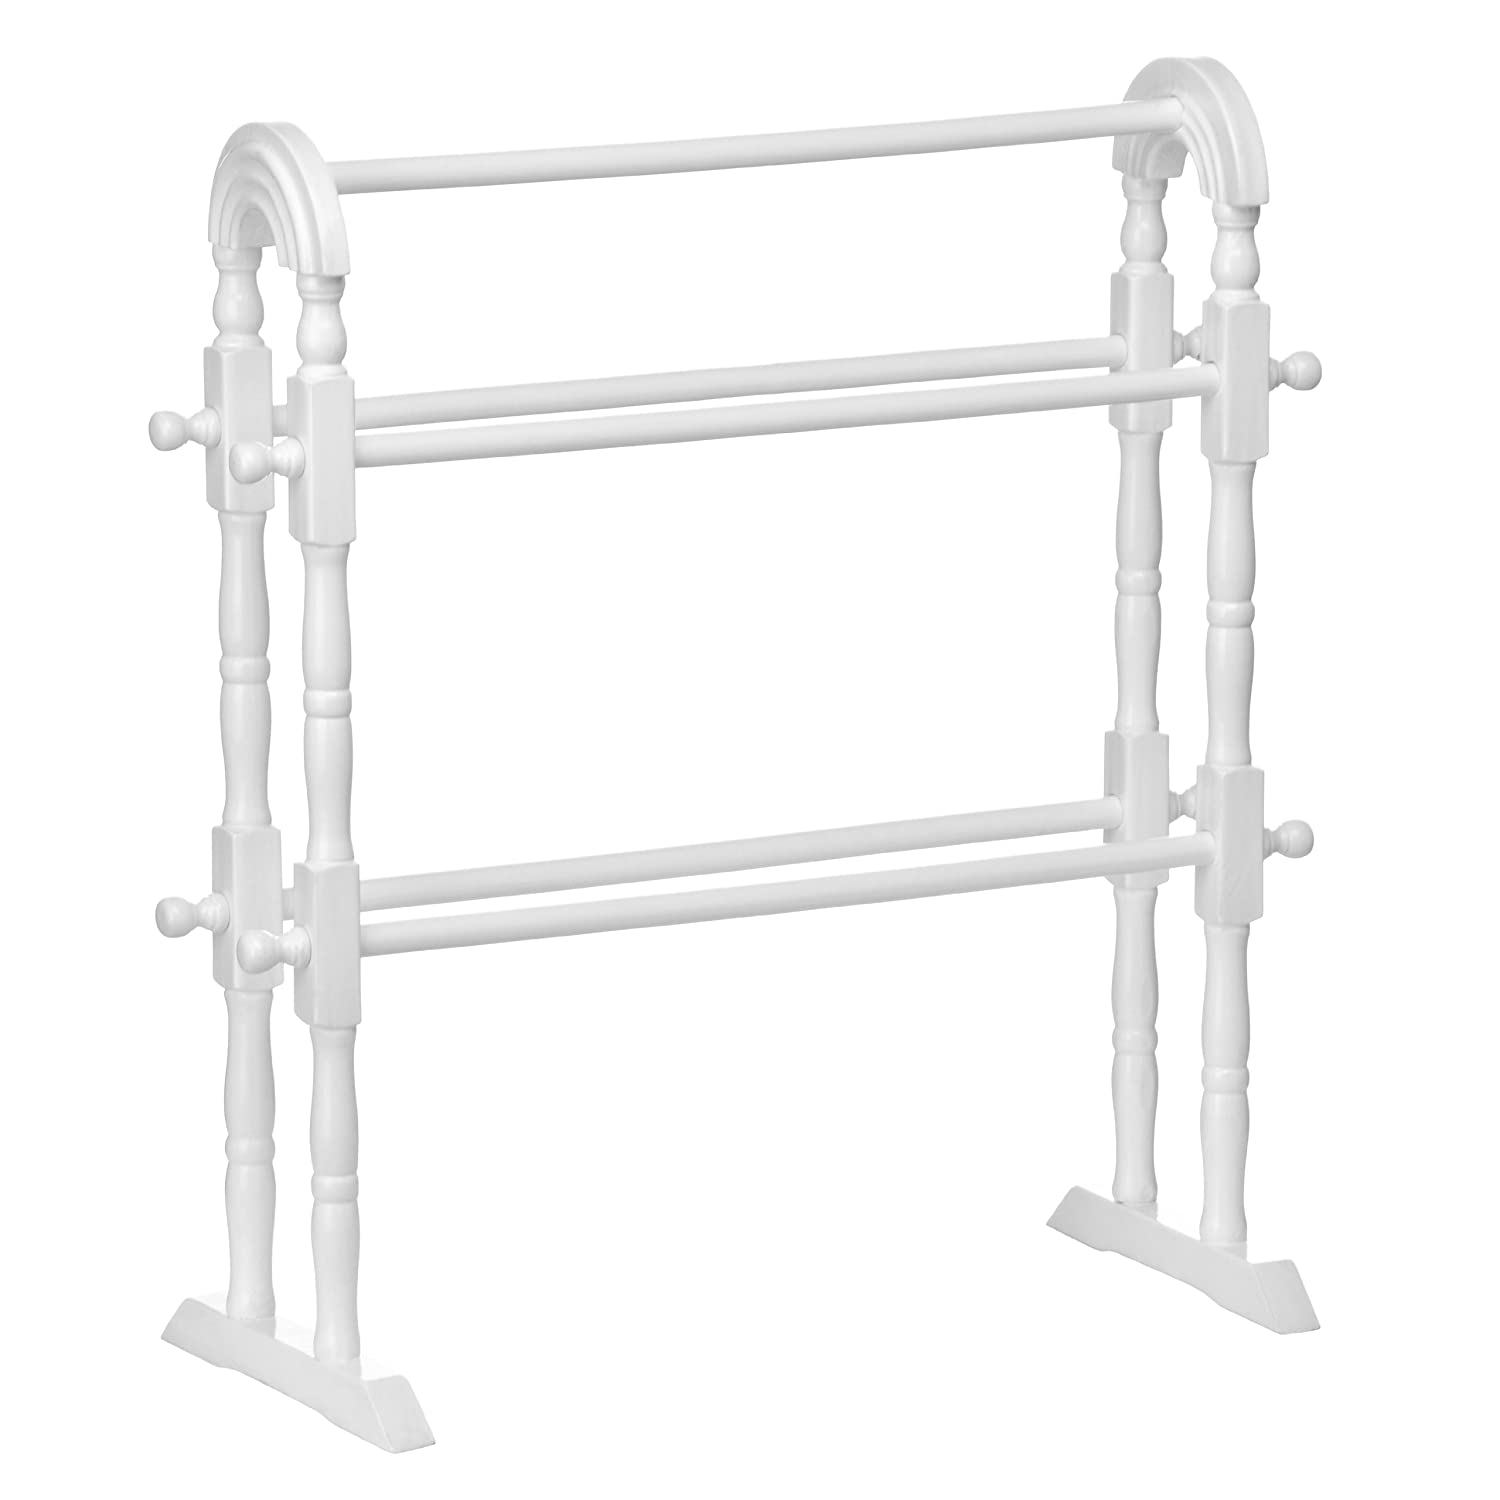 Floor Towel Rack. Floor Towel Rack L